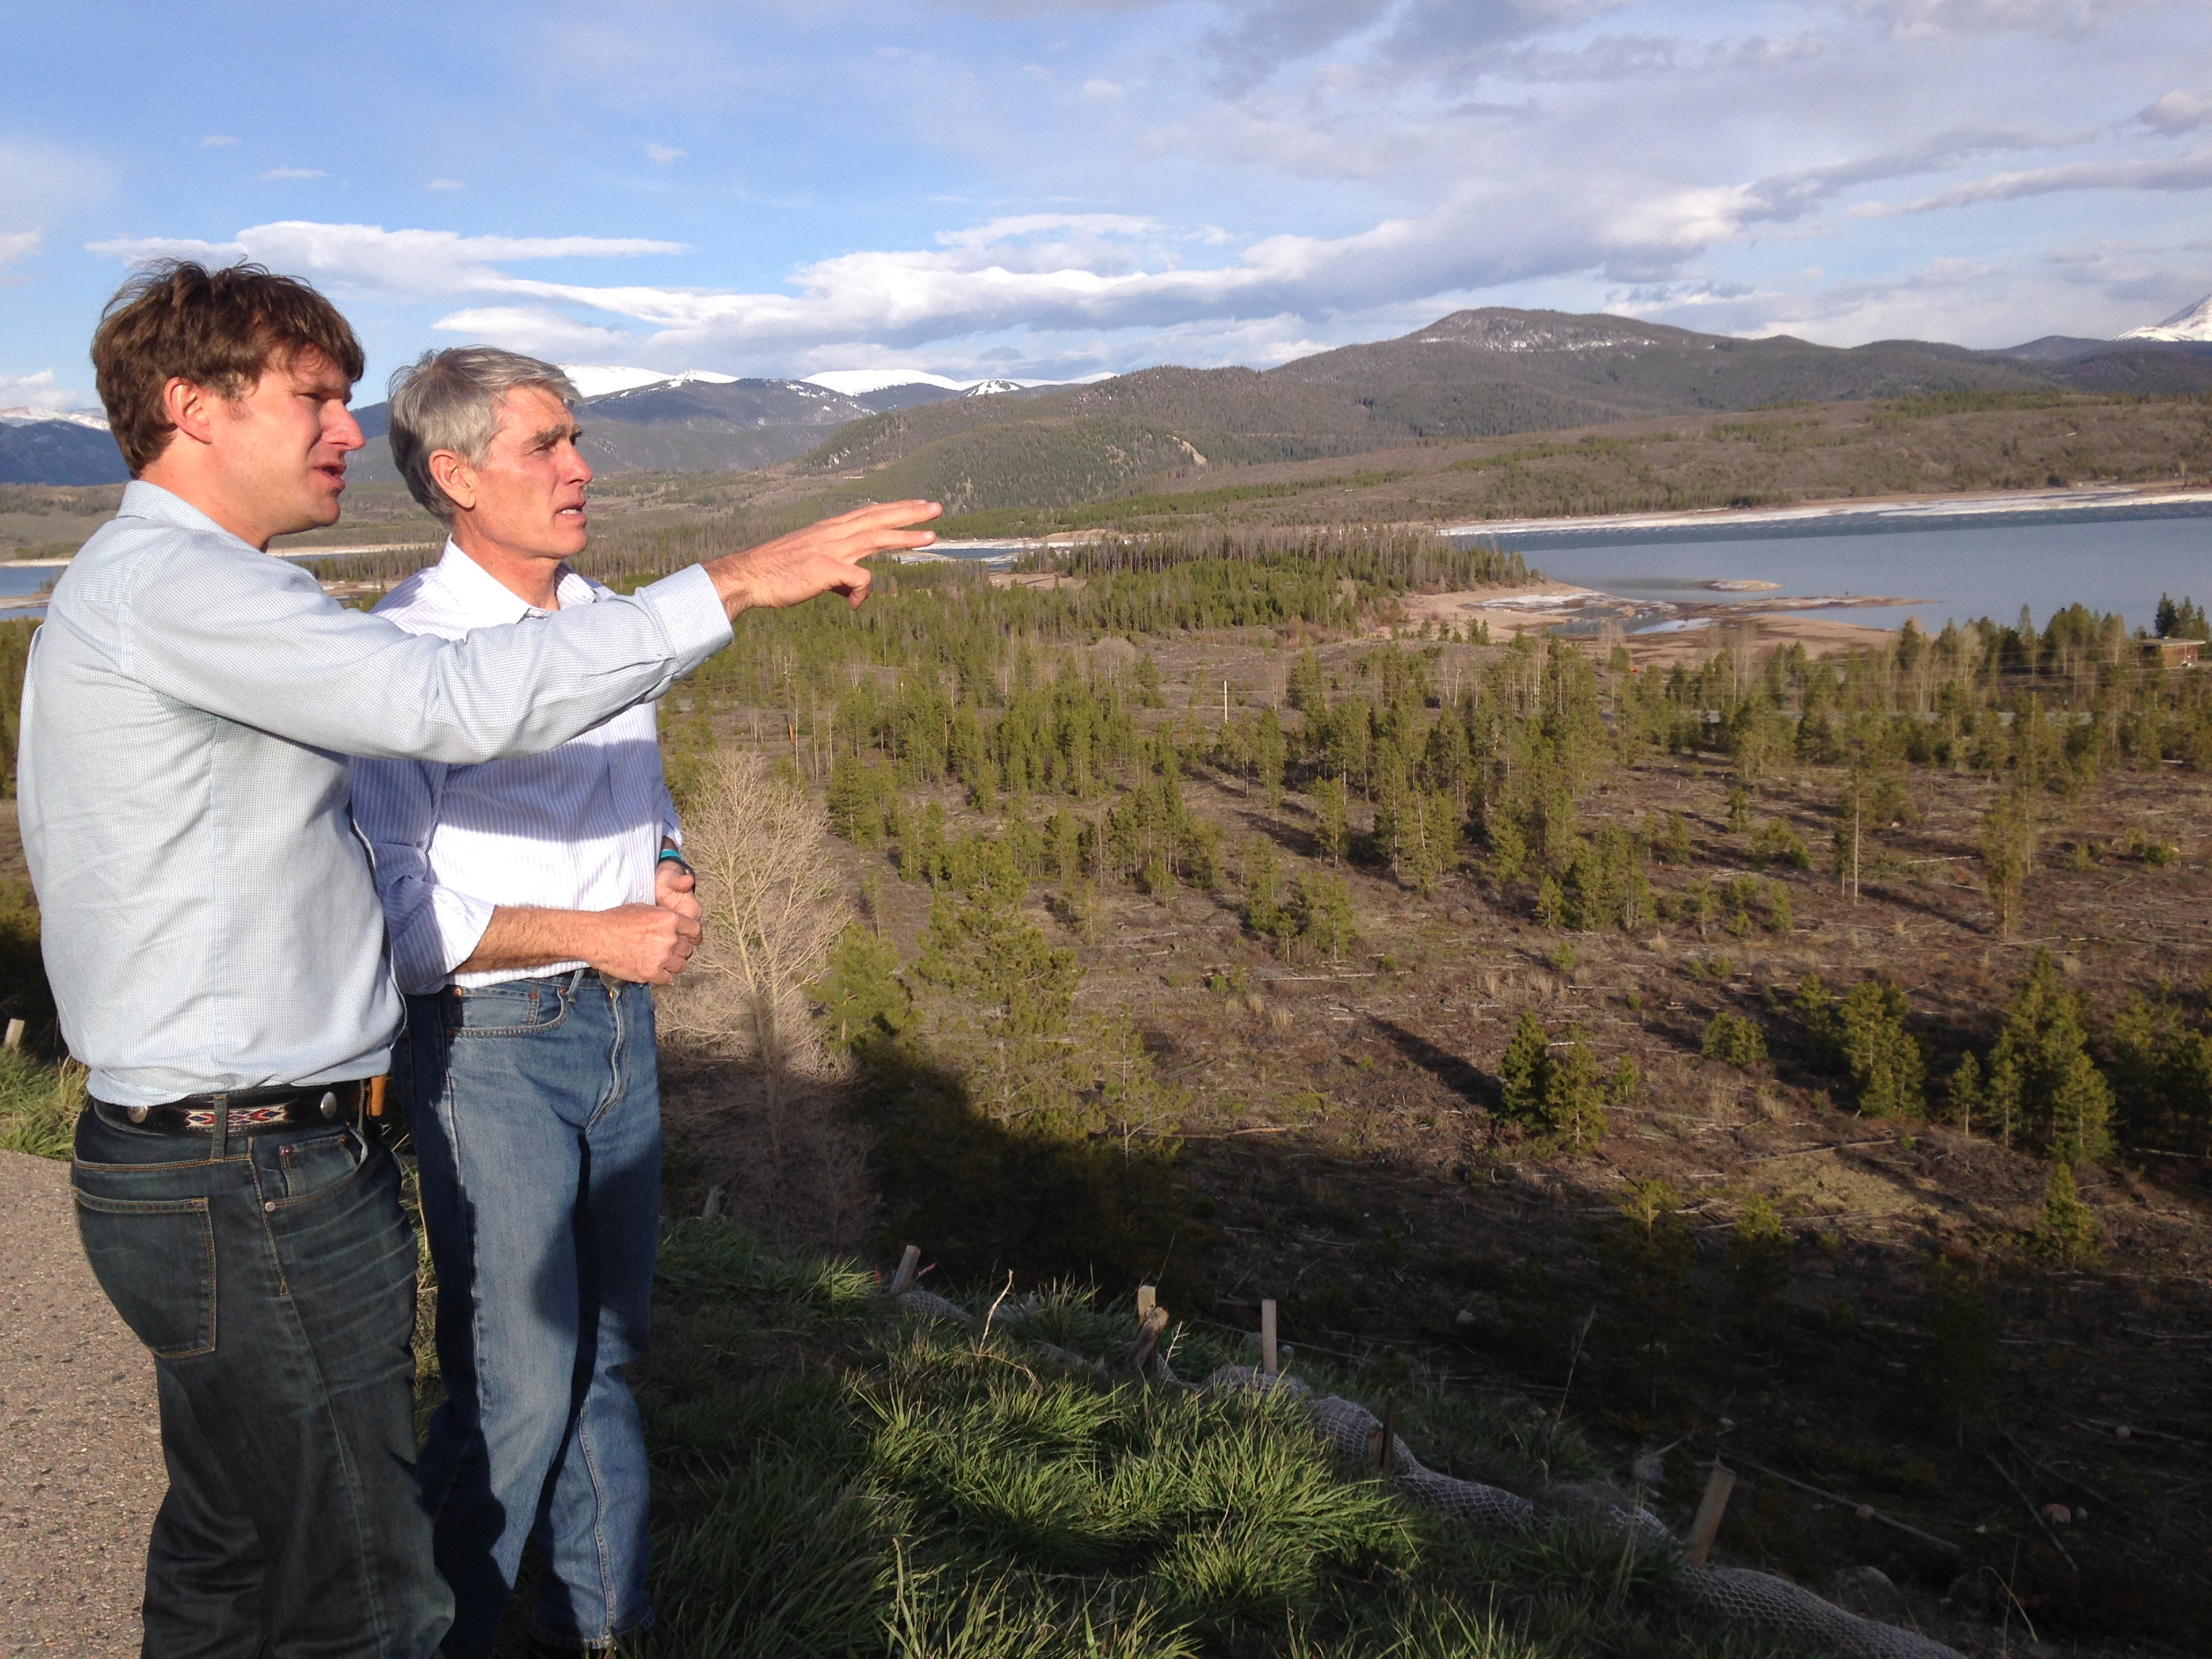 Commissioner Dan Gibbs and Sen. Mark Udall stand on an overlook, viewing a hillside above Dillon Reservoir.